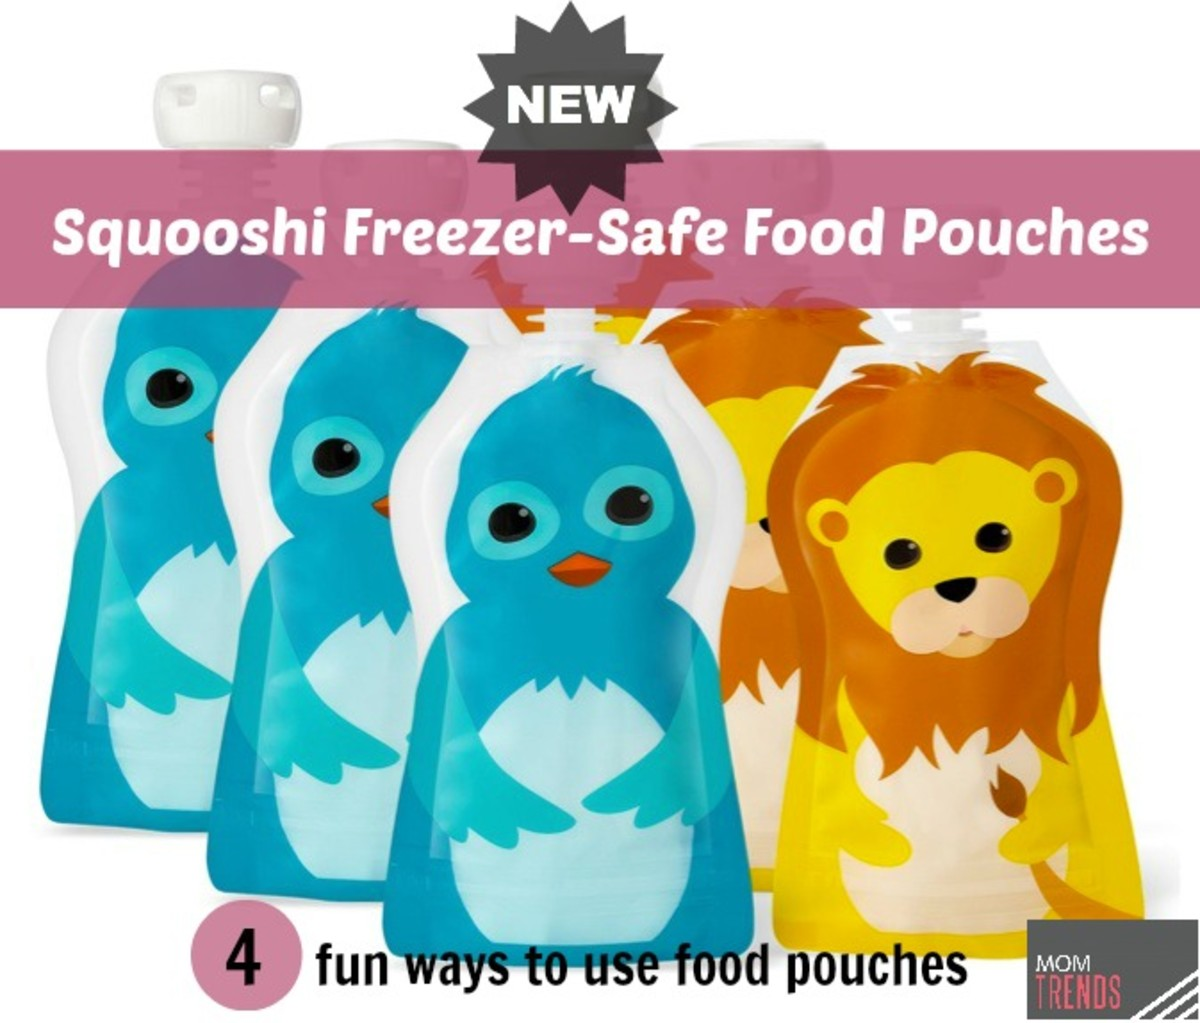 4 Fun Ways to Use Food Pouches